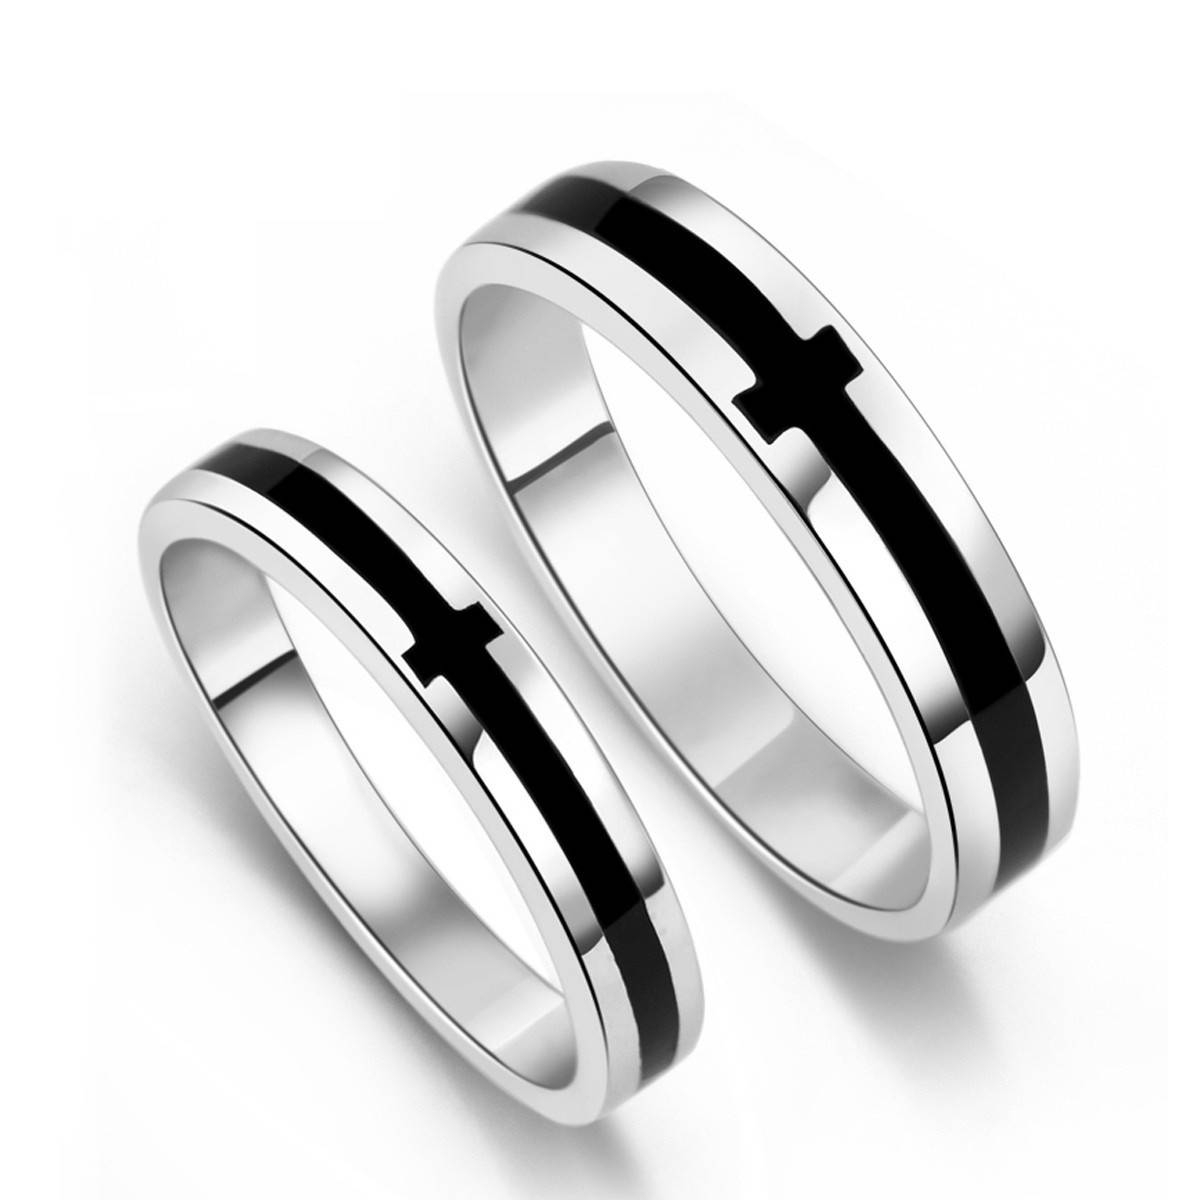 31 Most Amazing Black Wedding Rings For Men | Eternity Jewelry Pertaining To Black And Silver Men's Wedding Bands (View 2 of 15)